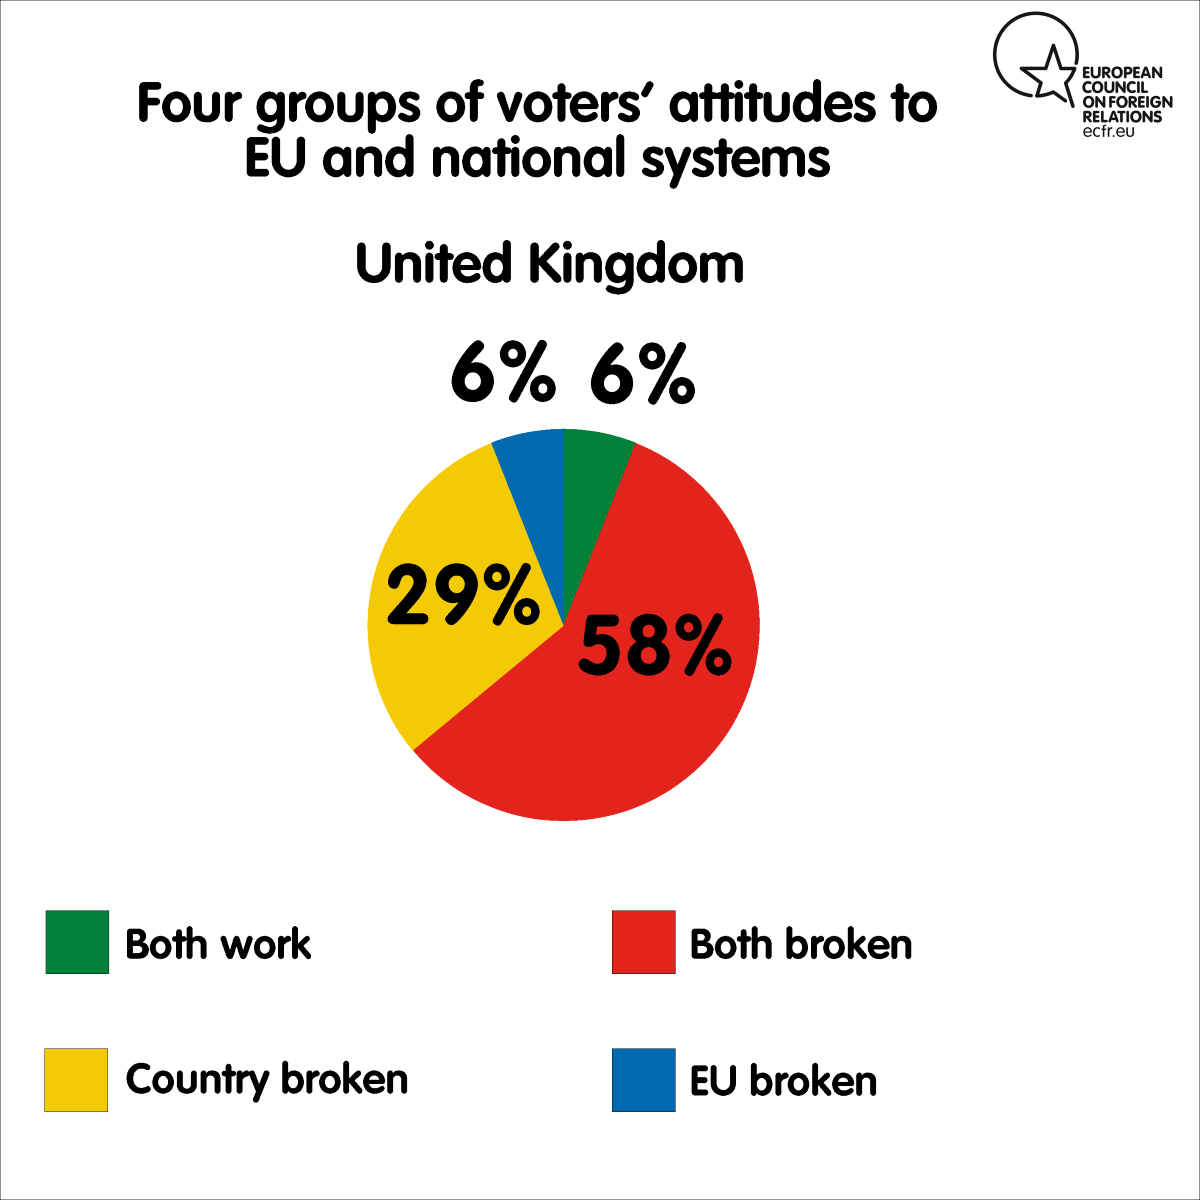 Four groups of voters' attitudes to EU and national systems in the UK